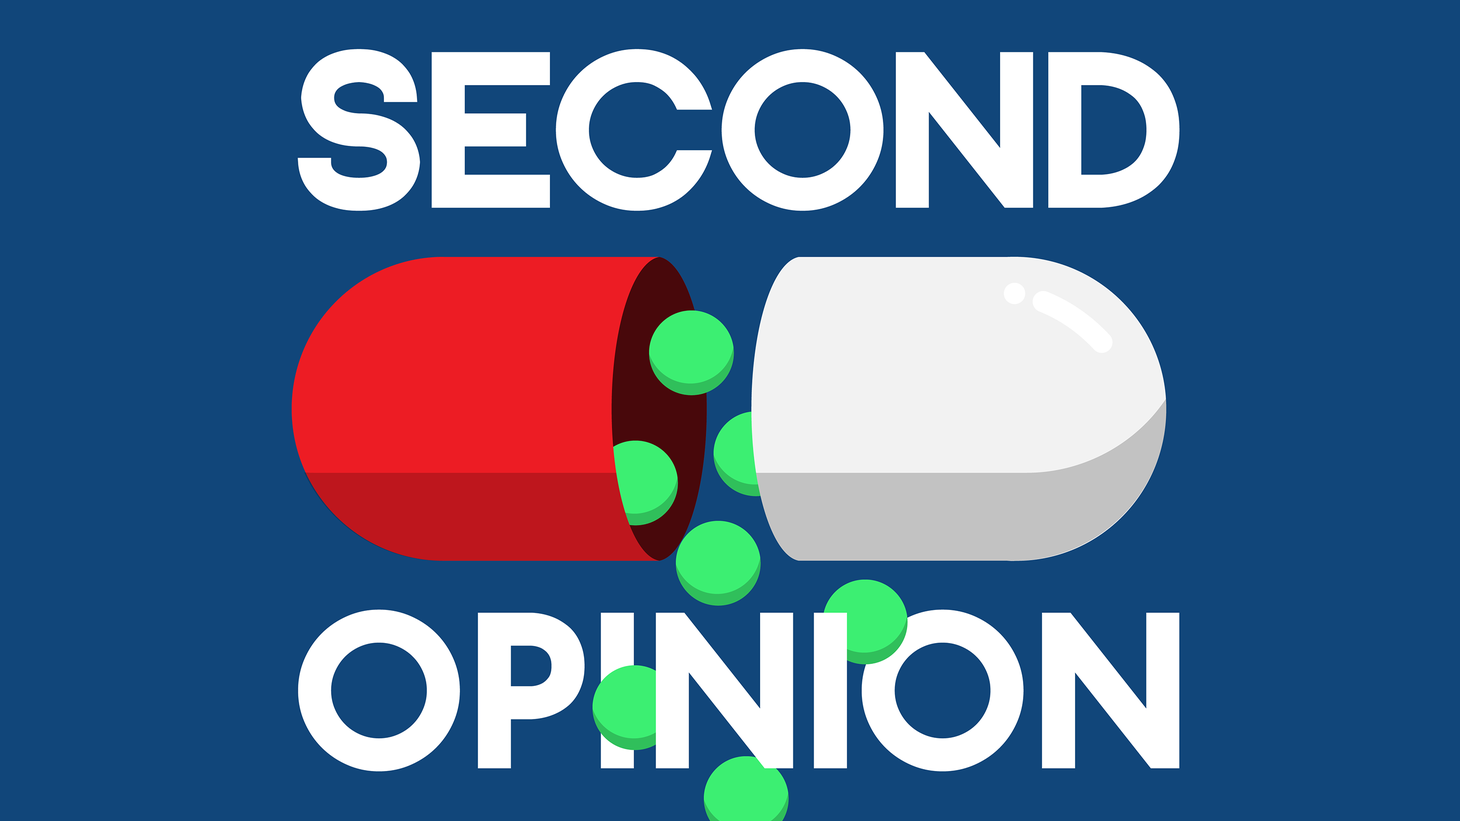 After the PSA test comes back positive, how does a man choose which treatment is best?